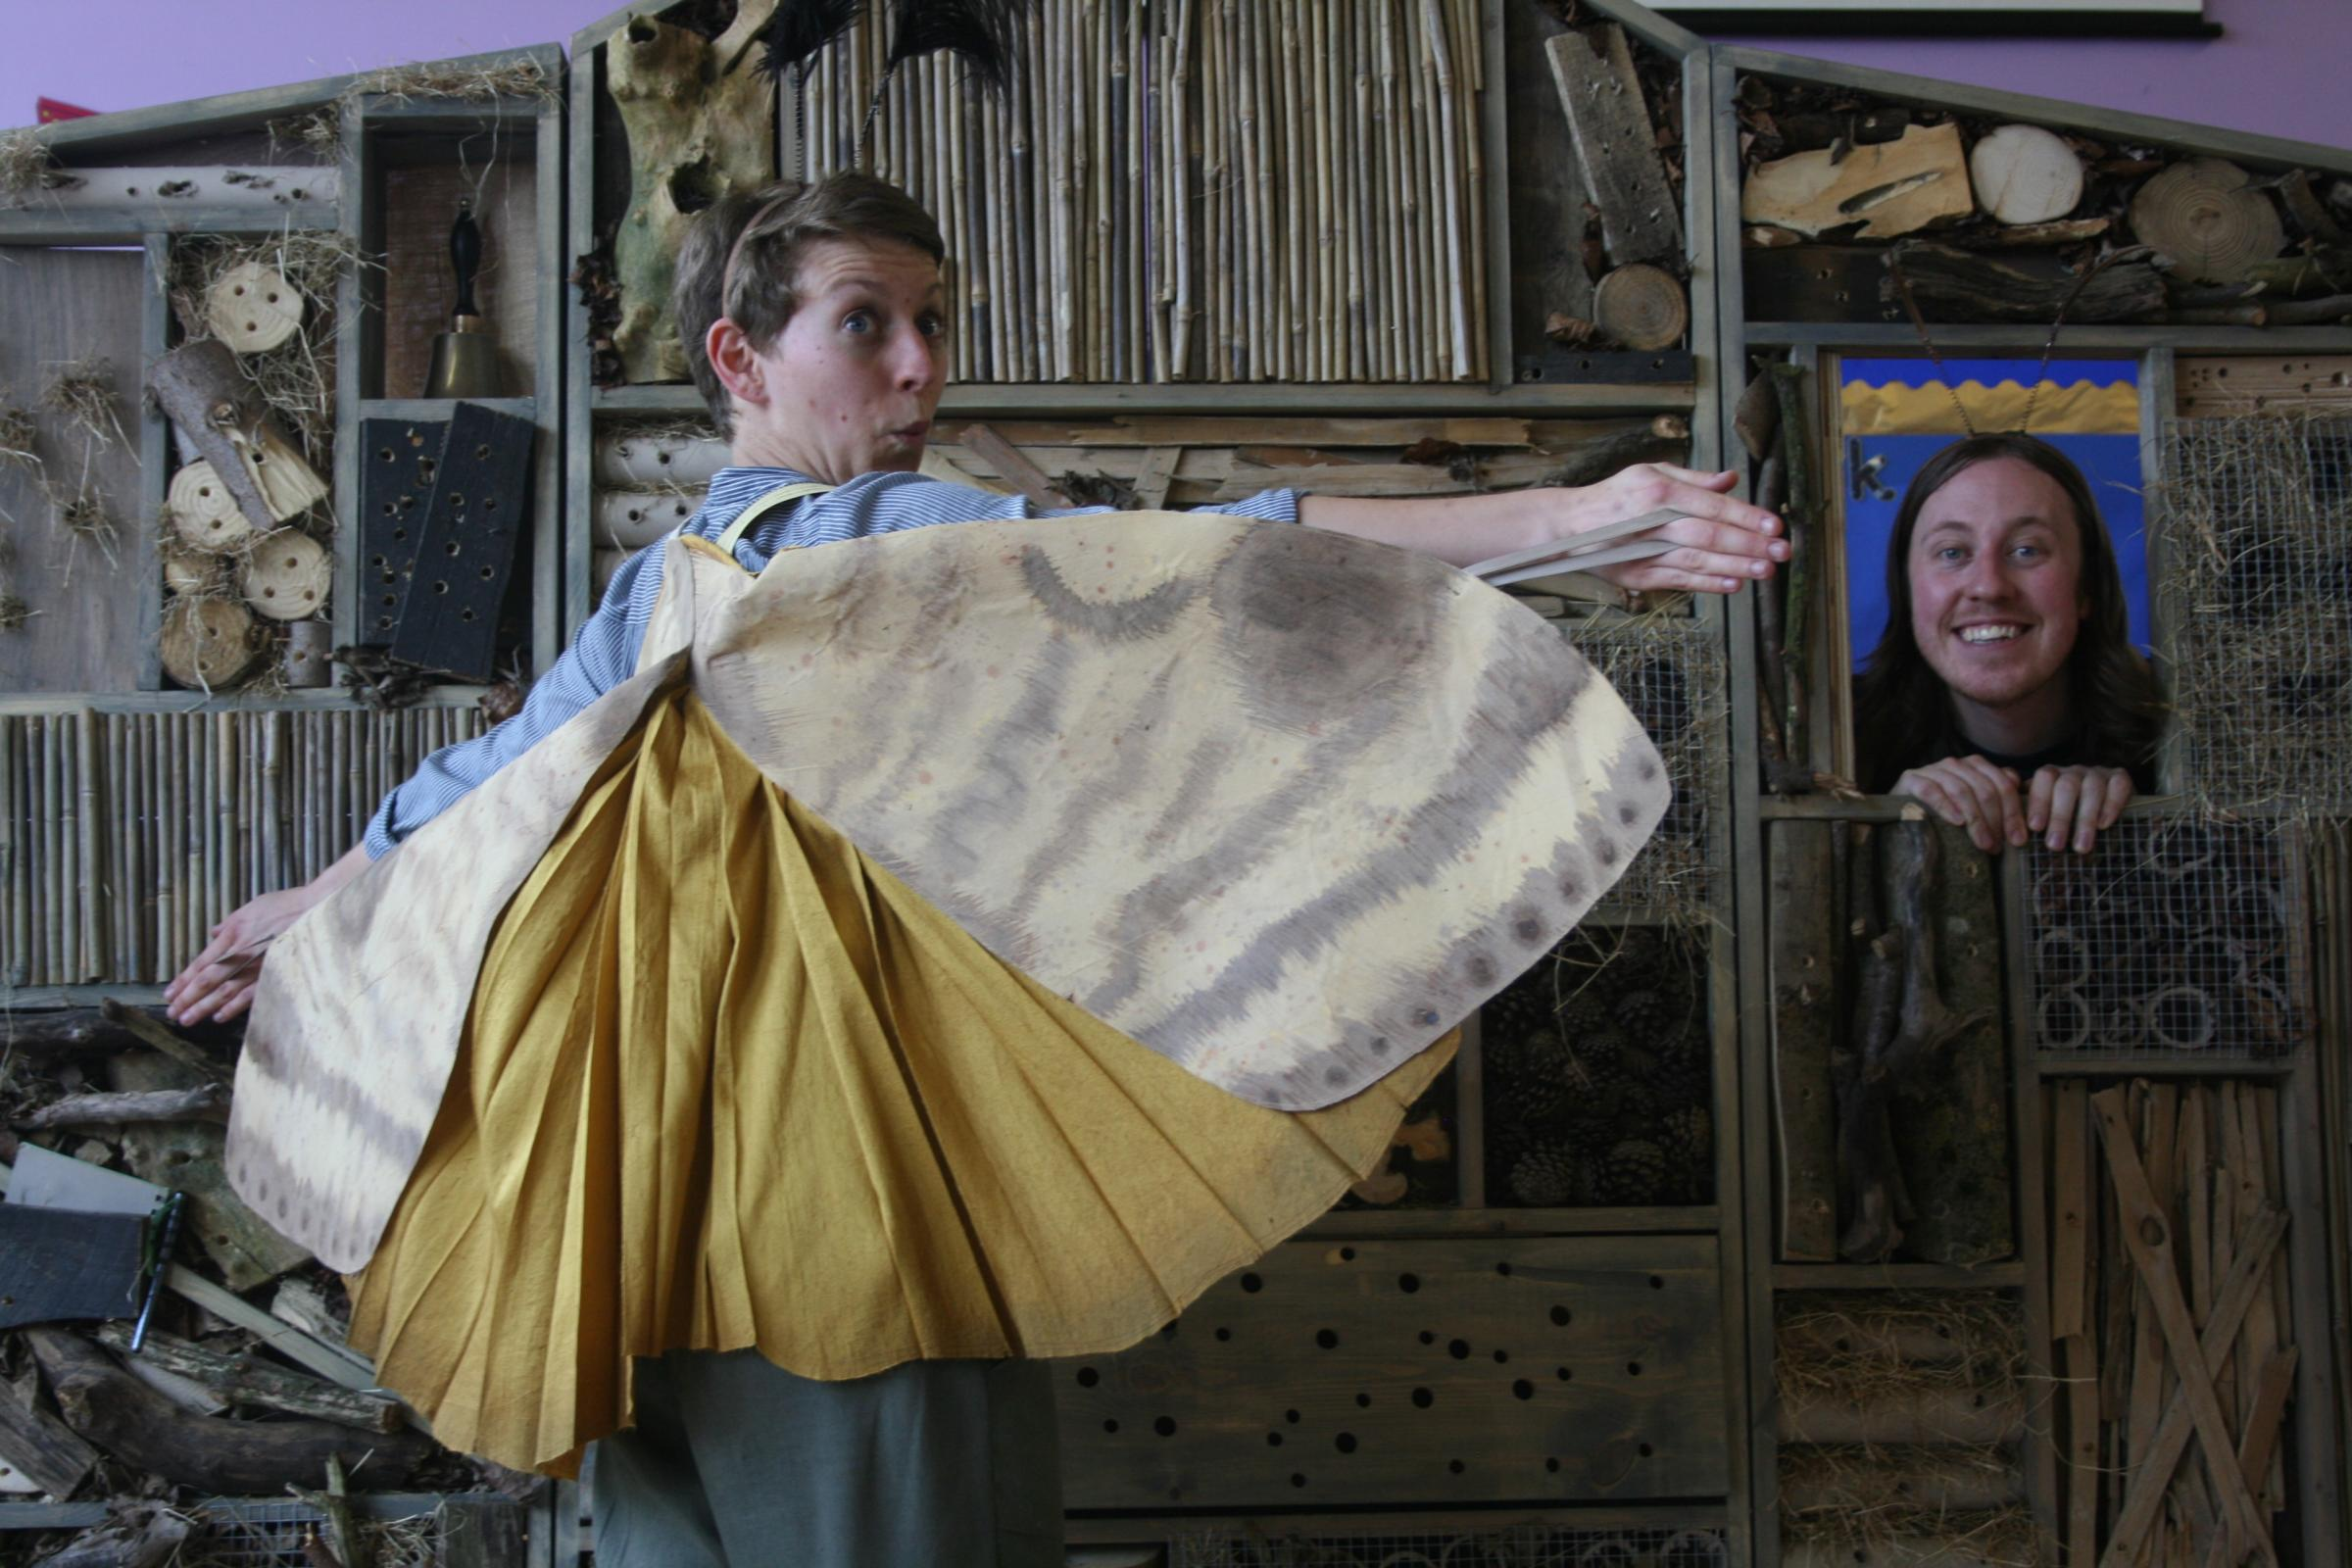 INVERTEBRATES: Actors from the Cap-a-Pie Theatre Company performing Six Legs, a lively and engaging play which brings to life the secret stories of insects